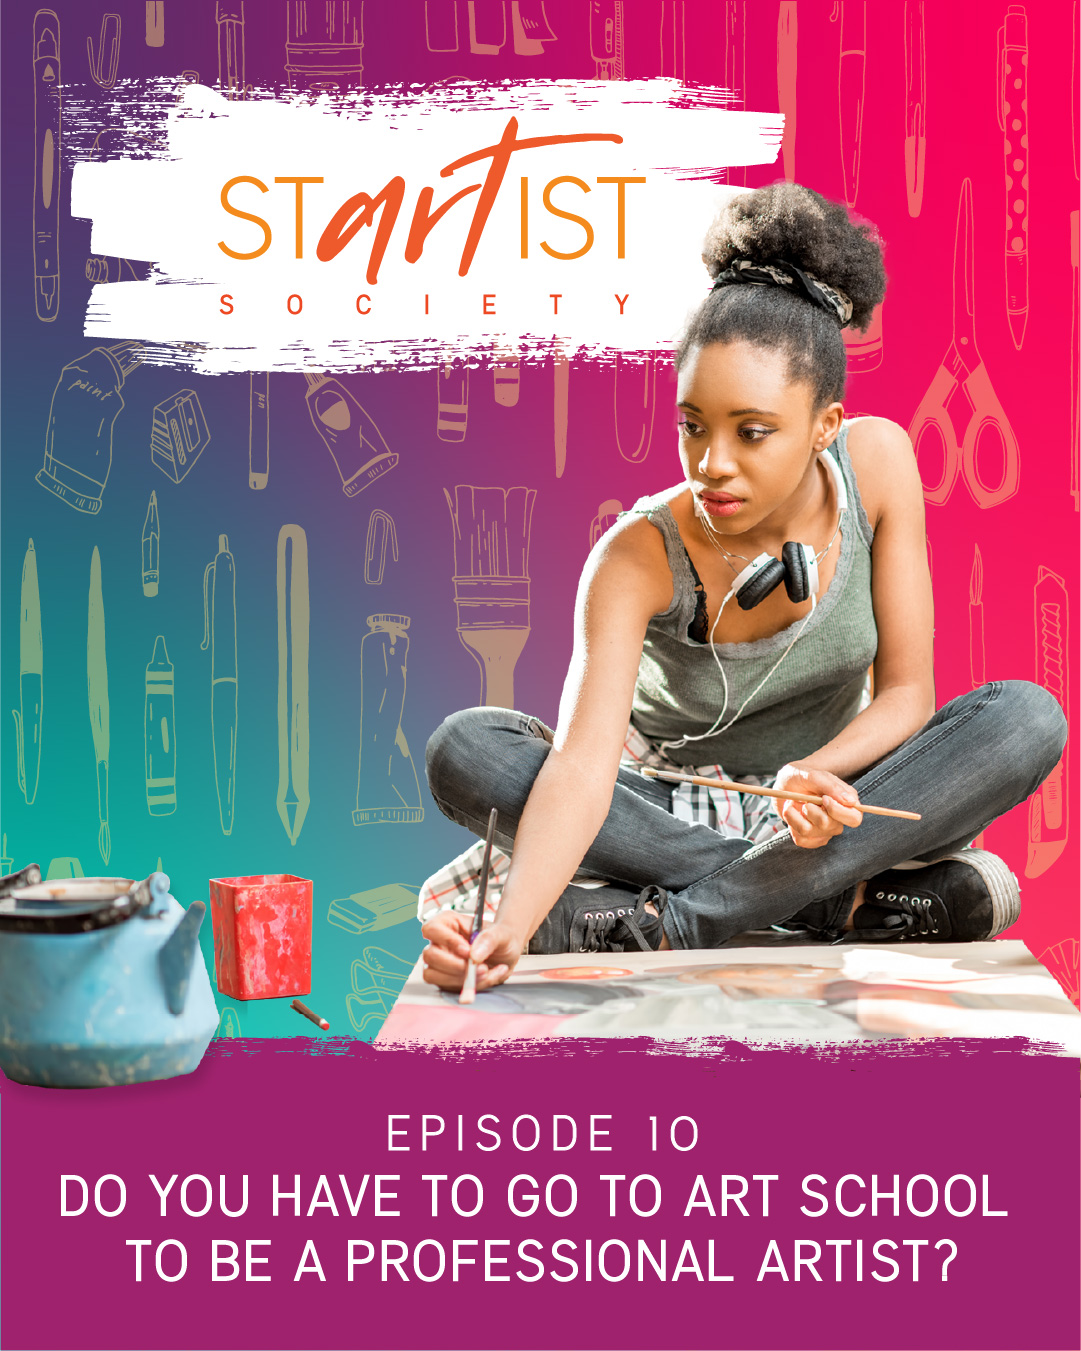 Do You Have To Go To Art School To Be A Professional Artist?